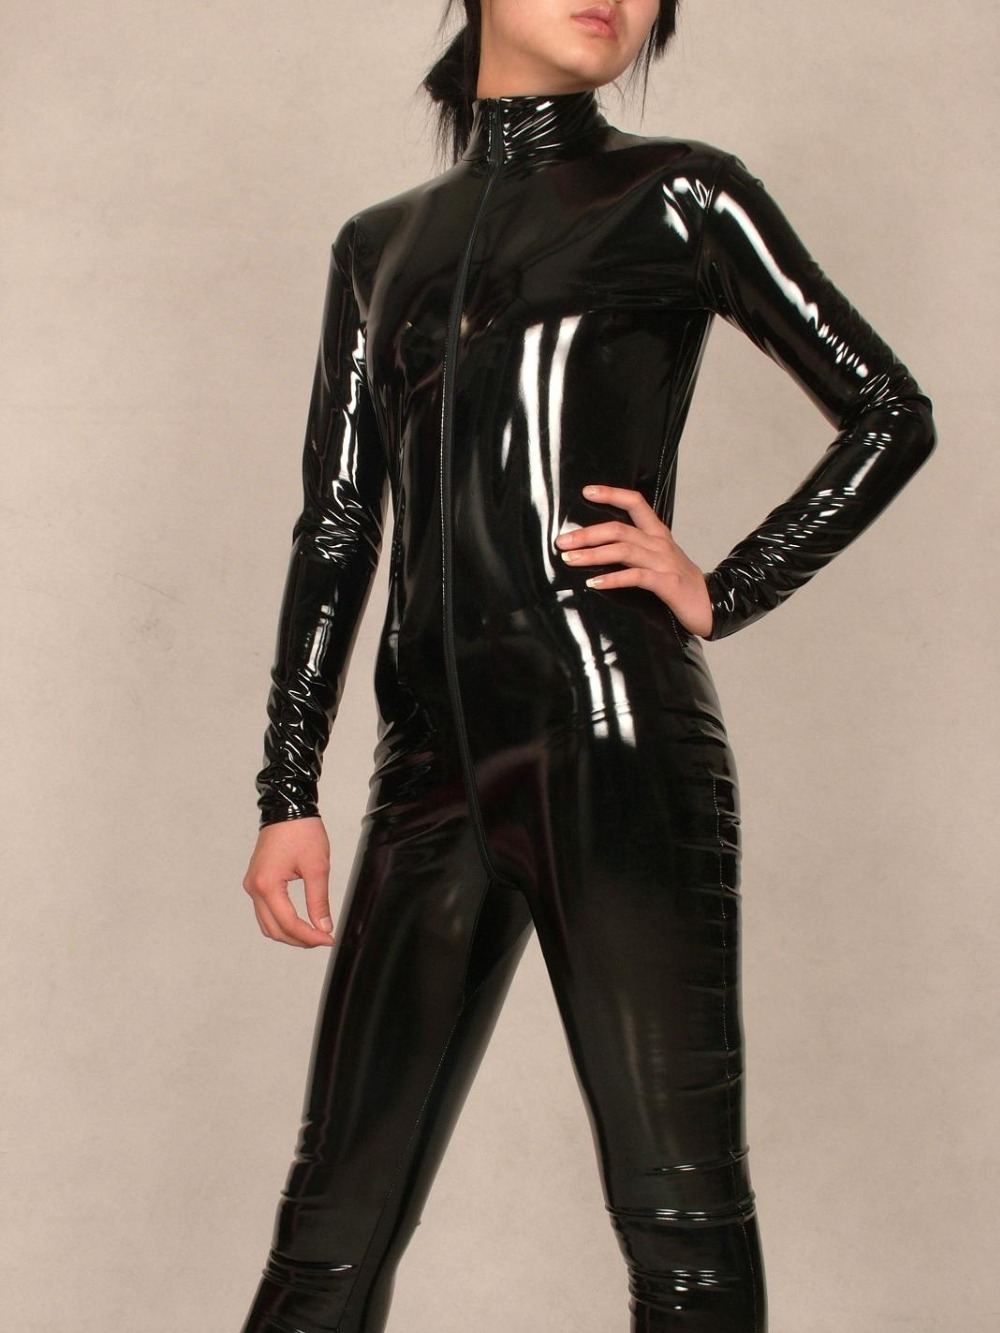 BLACK Pvc bright paint leather sexy Suit full body tights Costumes-Super  smooth sexy